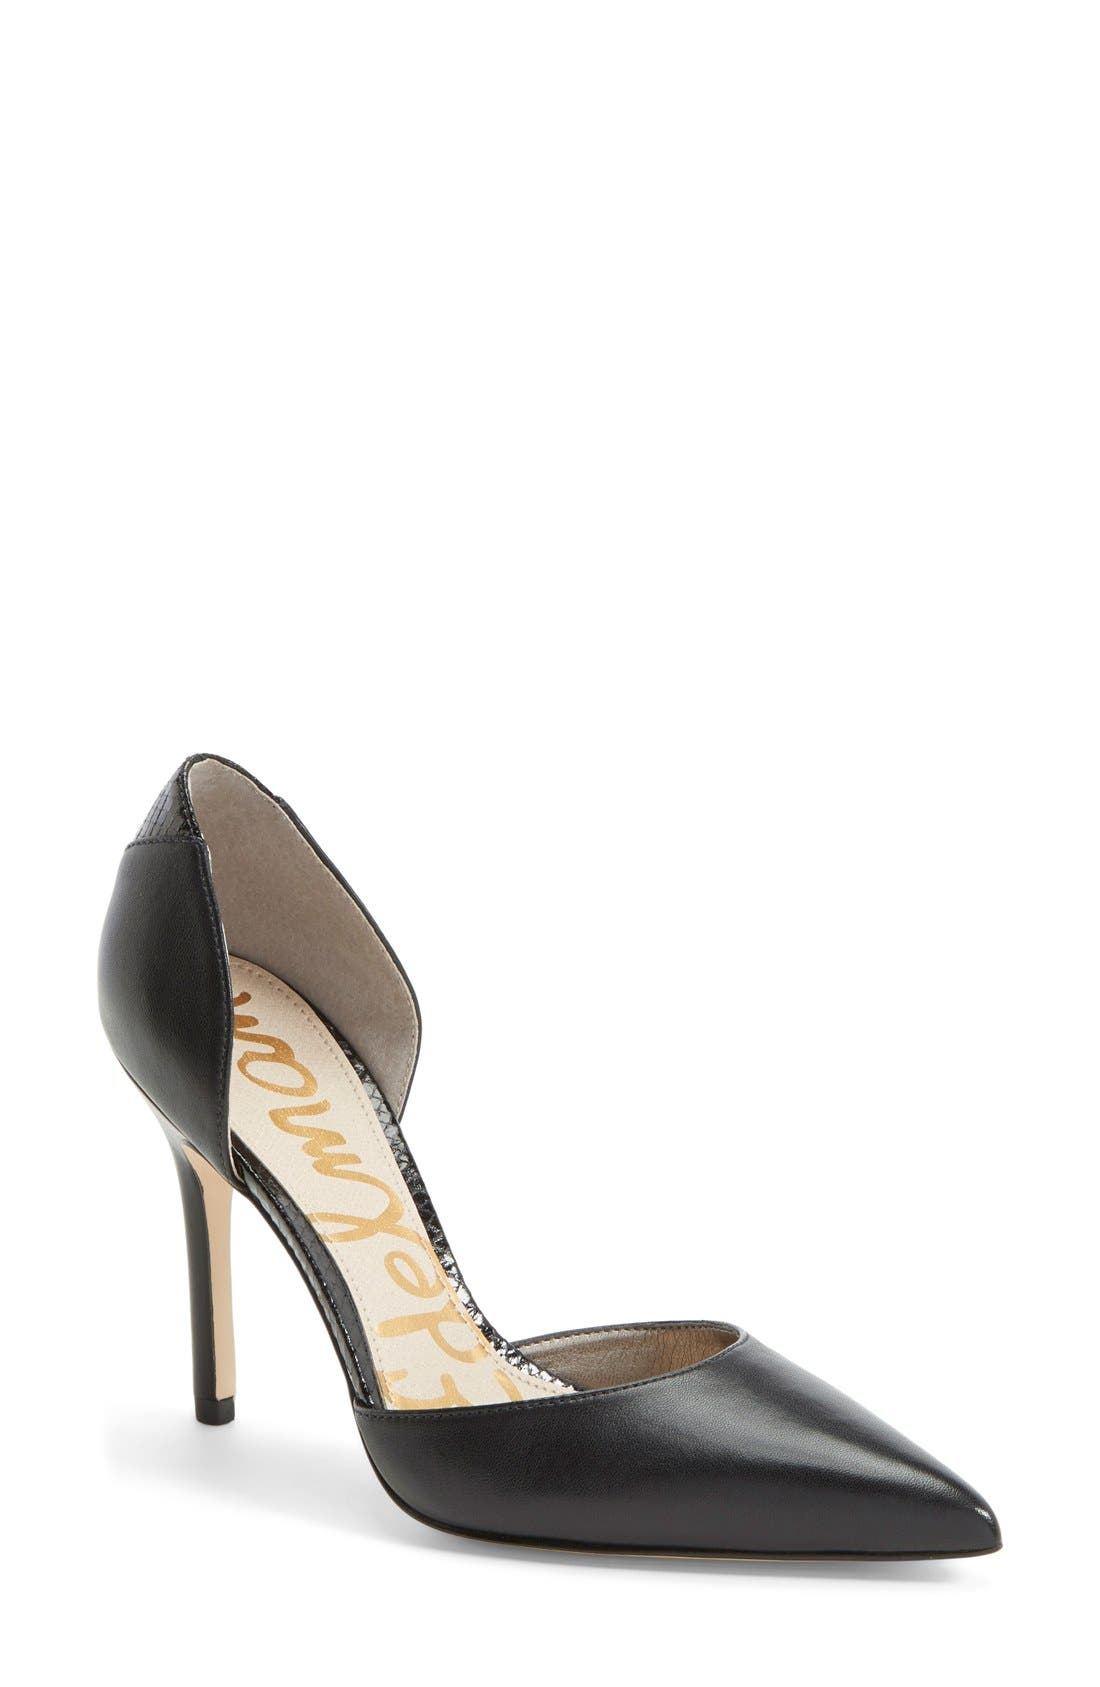 Alternate Image 1 Selected - Sam Edelman 'Delilah' d'Orsay Pump (Women)